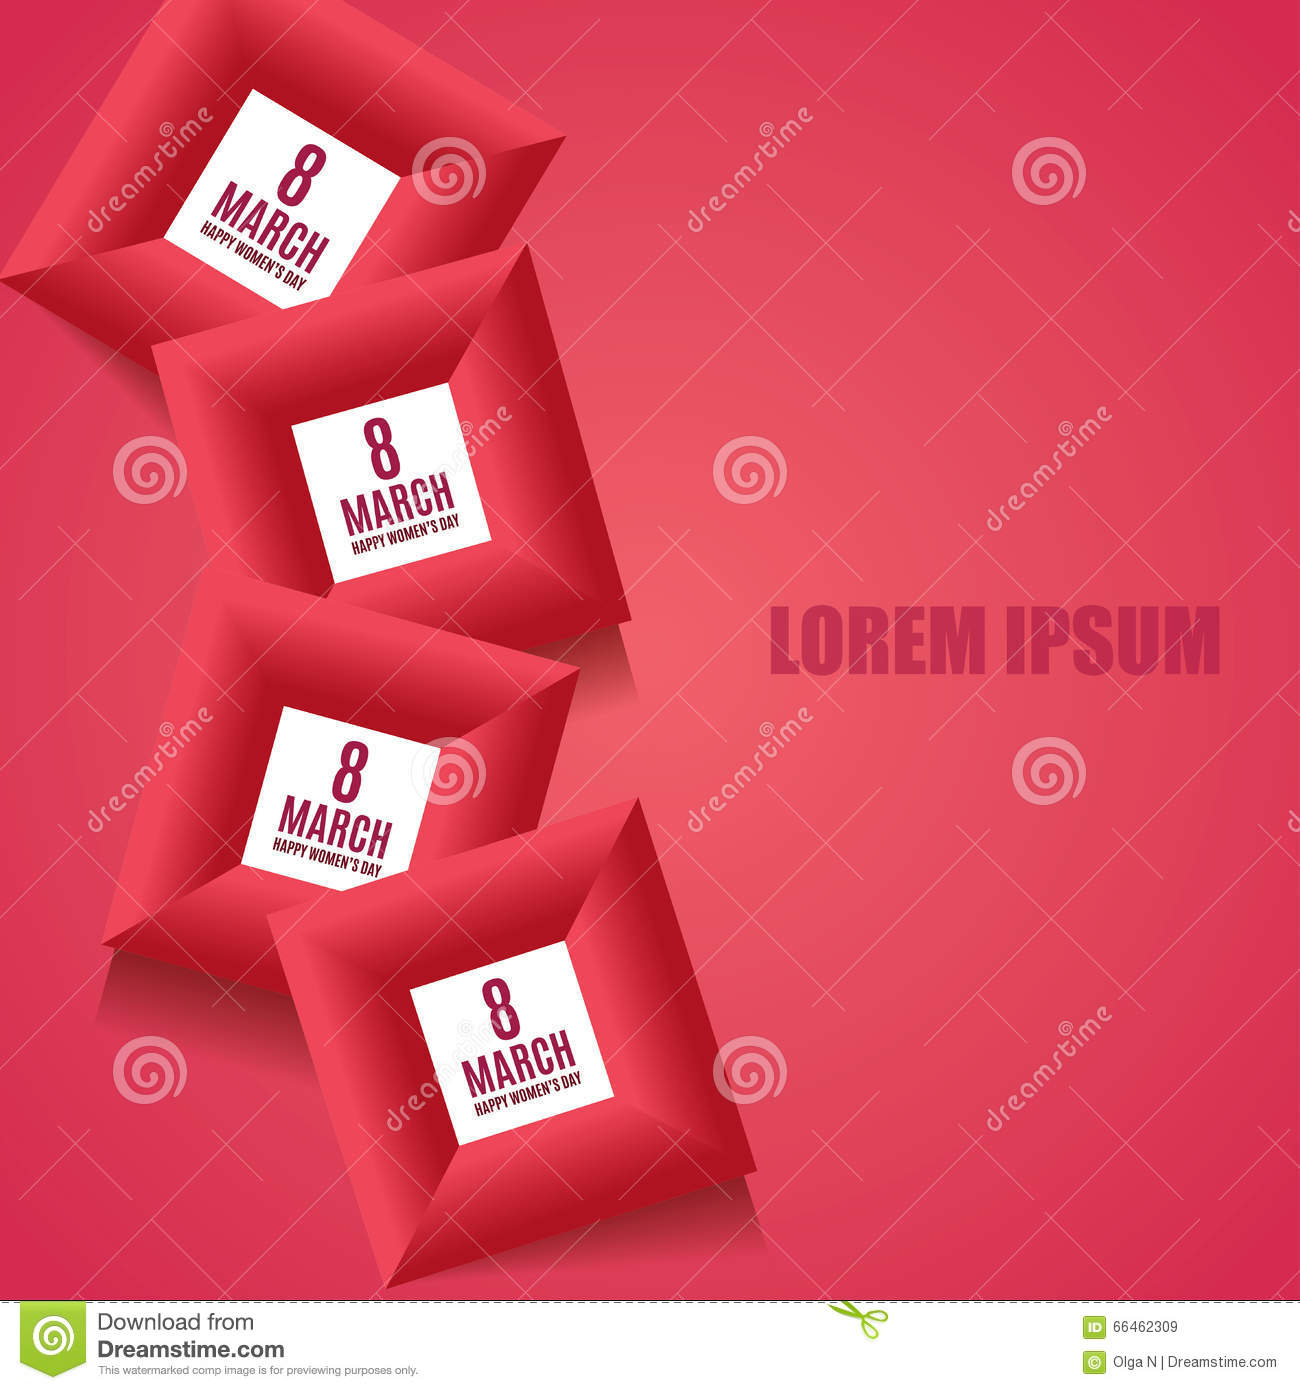 8 march women u0026 39 s day background template in red colors